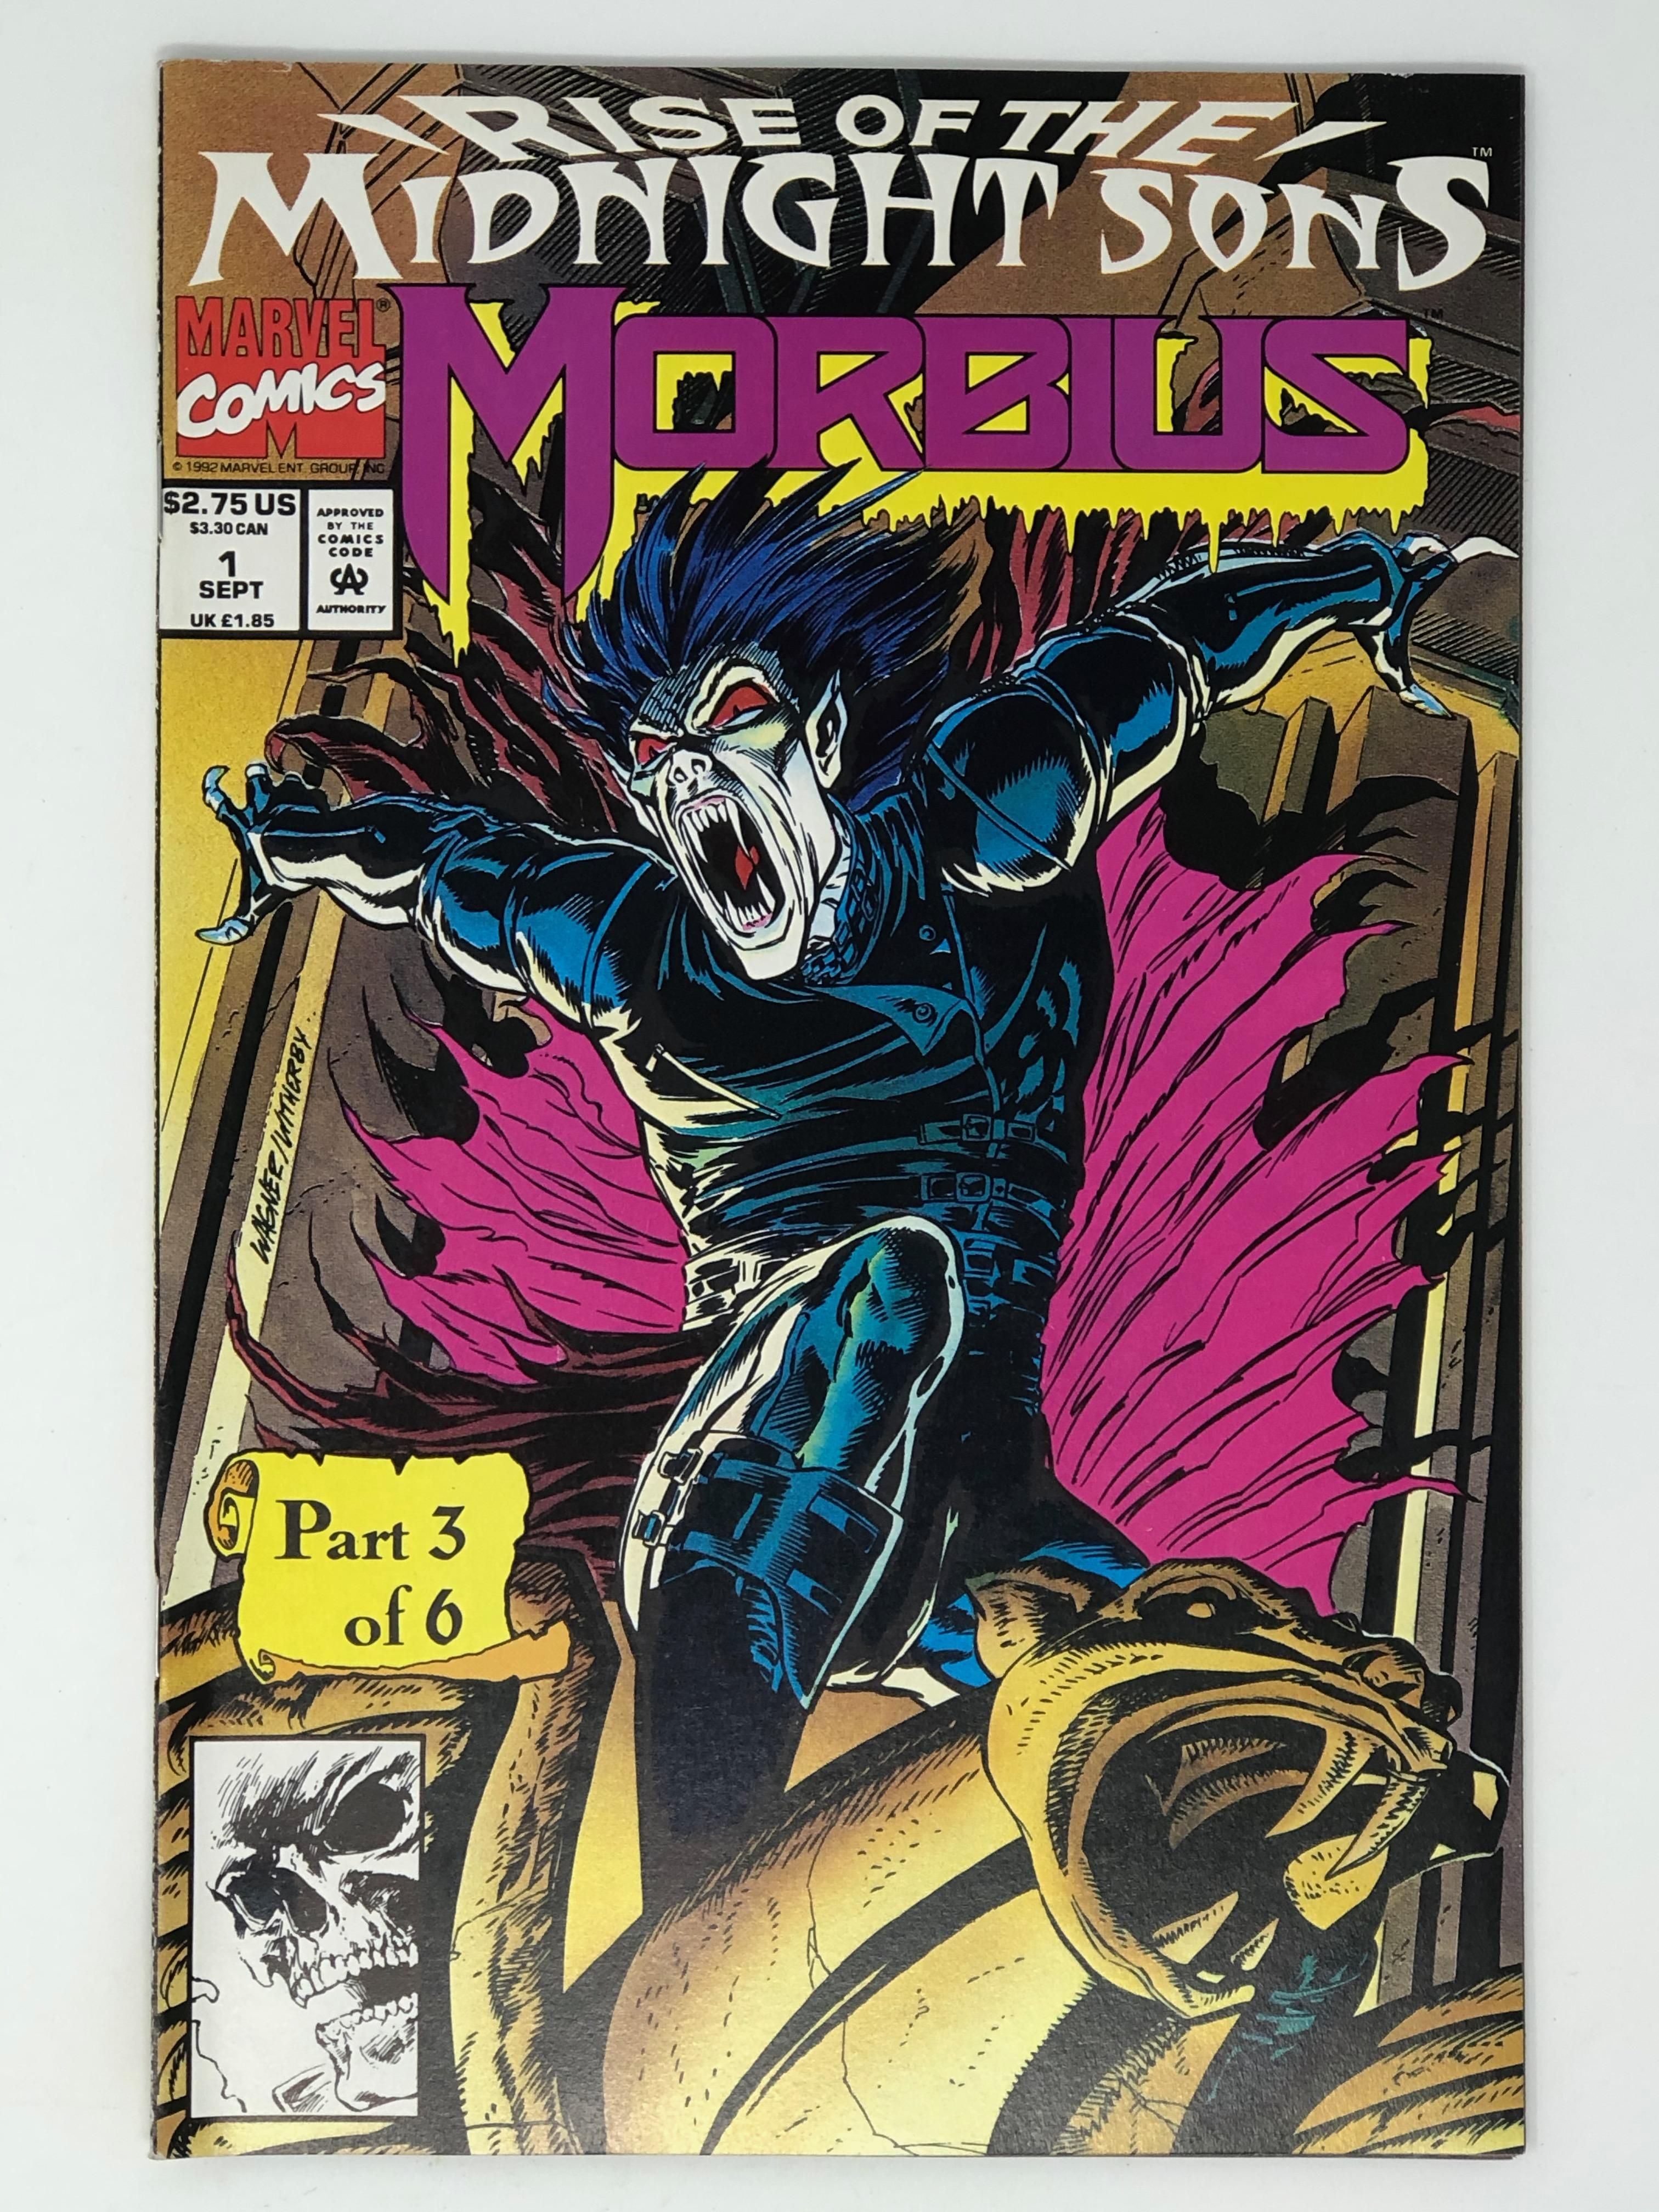 MARVEL, MORBIUS rise of the midnight sons part 3 of 6 1